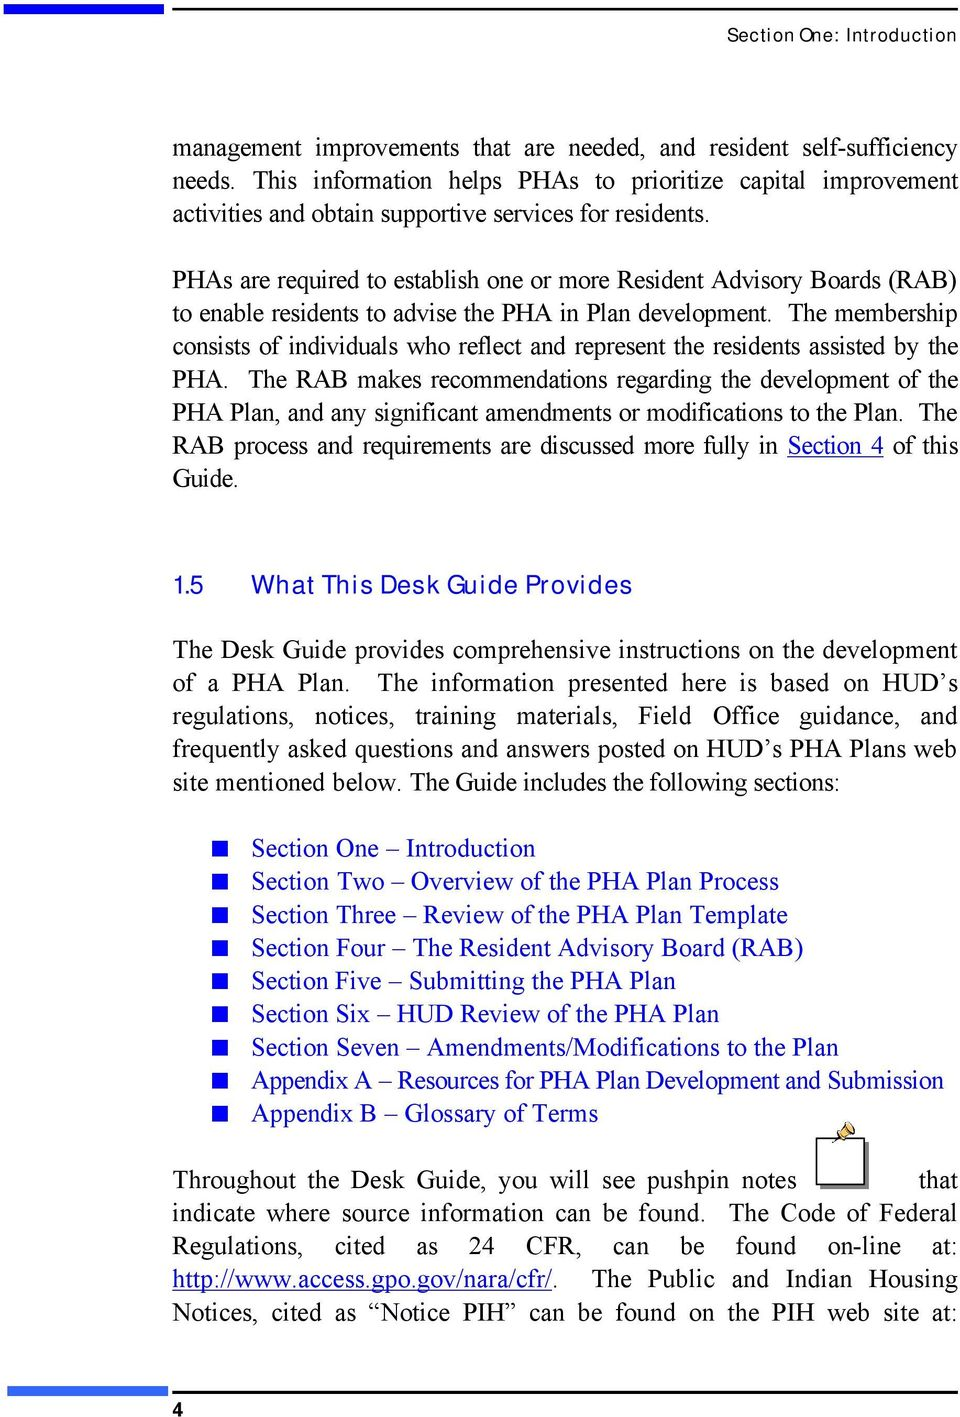 PHAs are required to establish one or more Resident Advisory Boards (RAB) to enable residents to advise the PHA in Plan development.